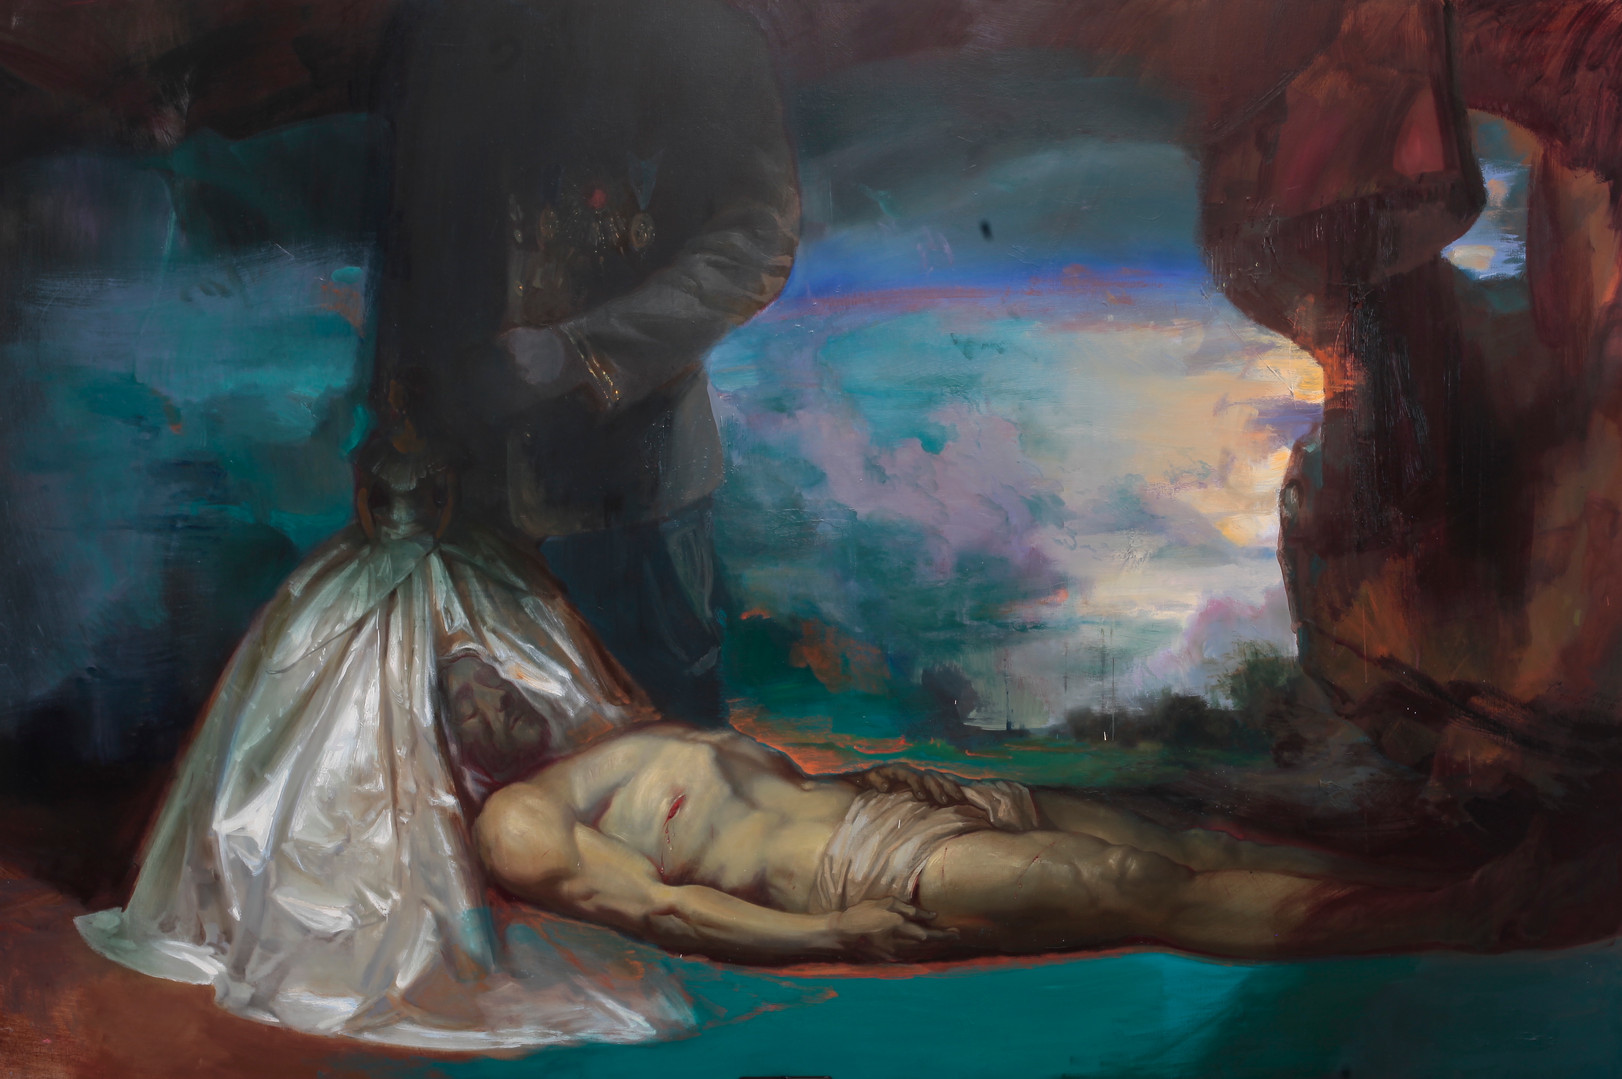 I want to heal, 2020 Huile sur toile, 200x300 cm